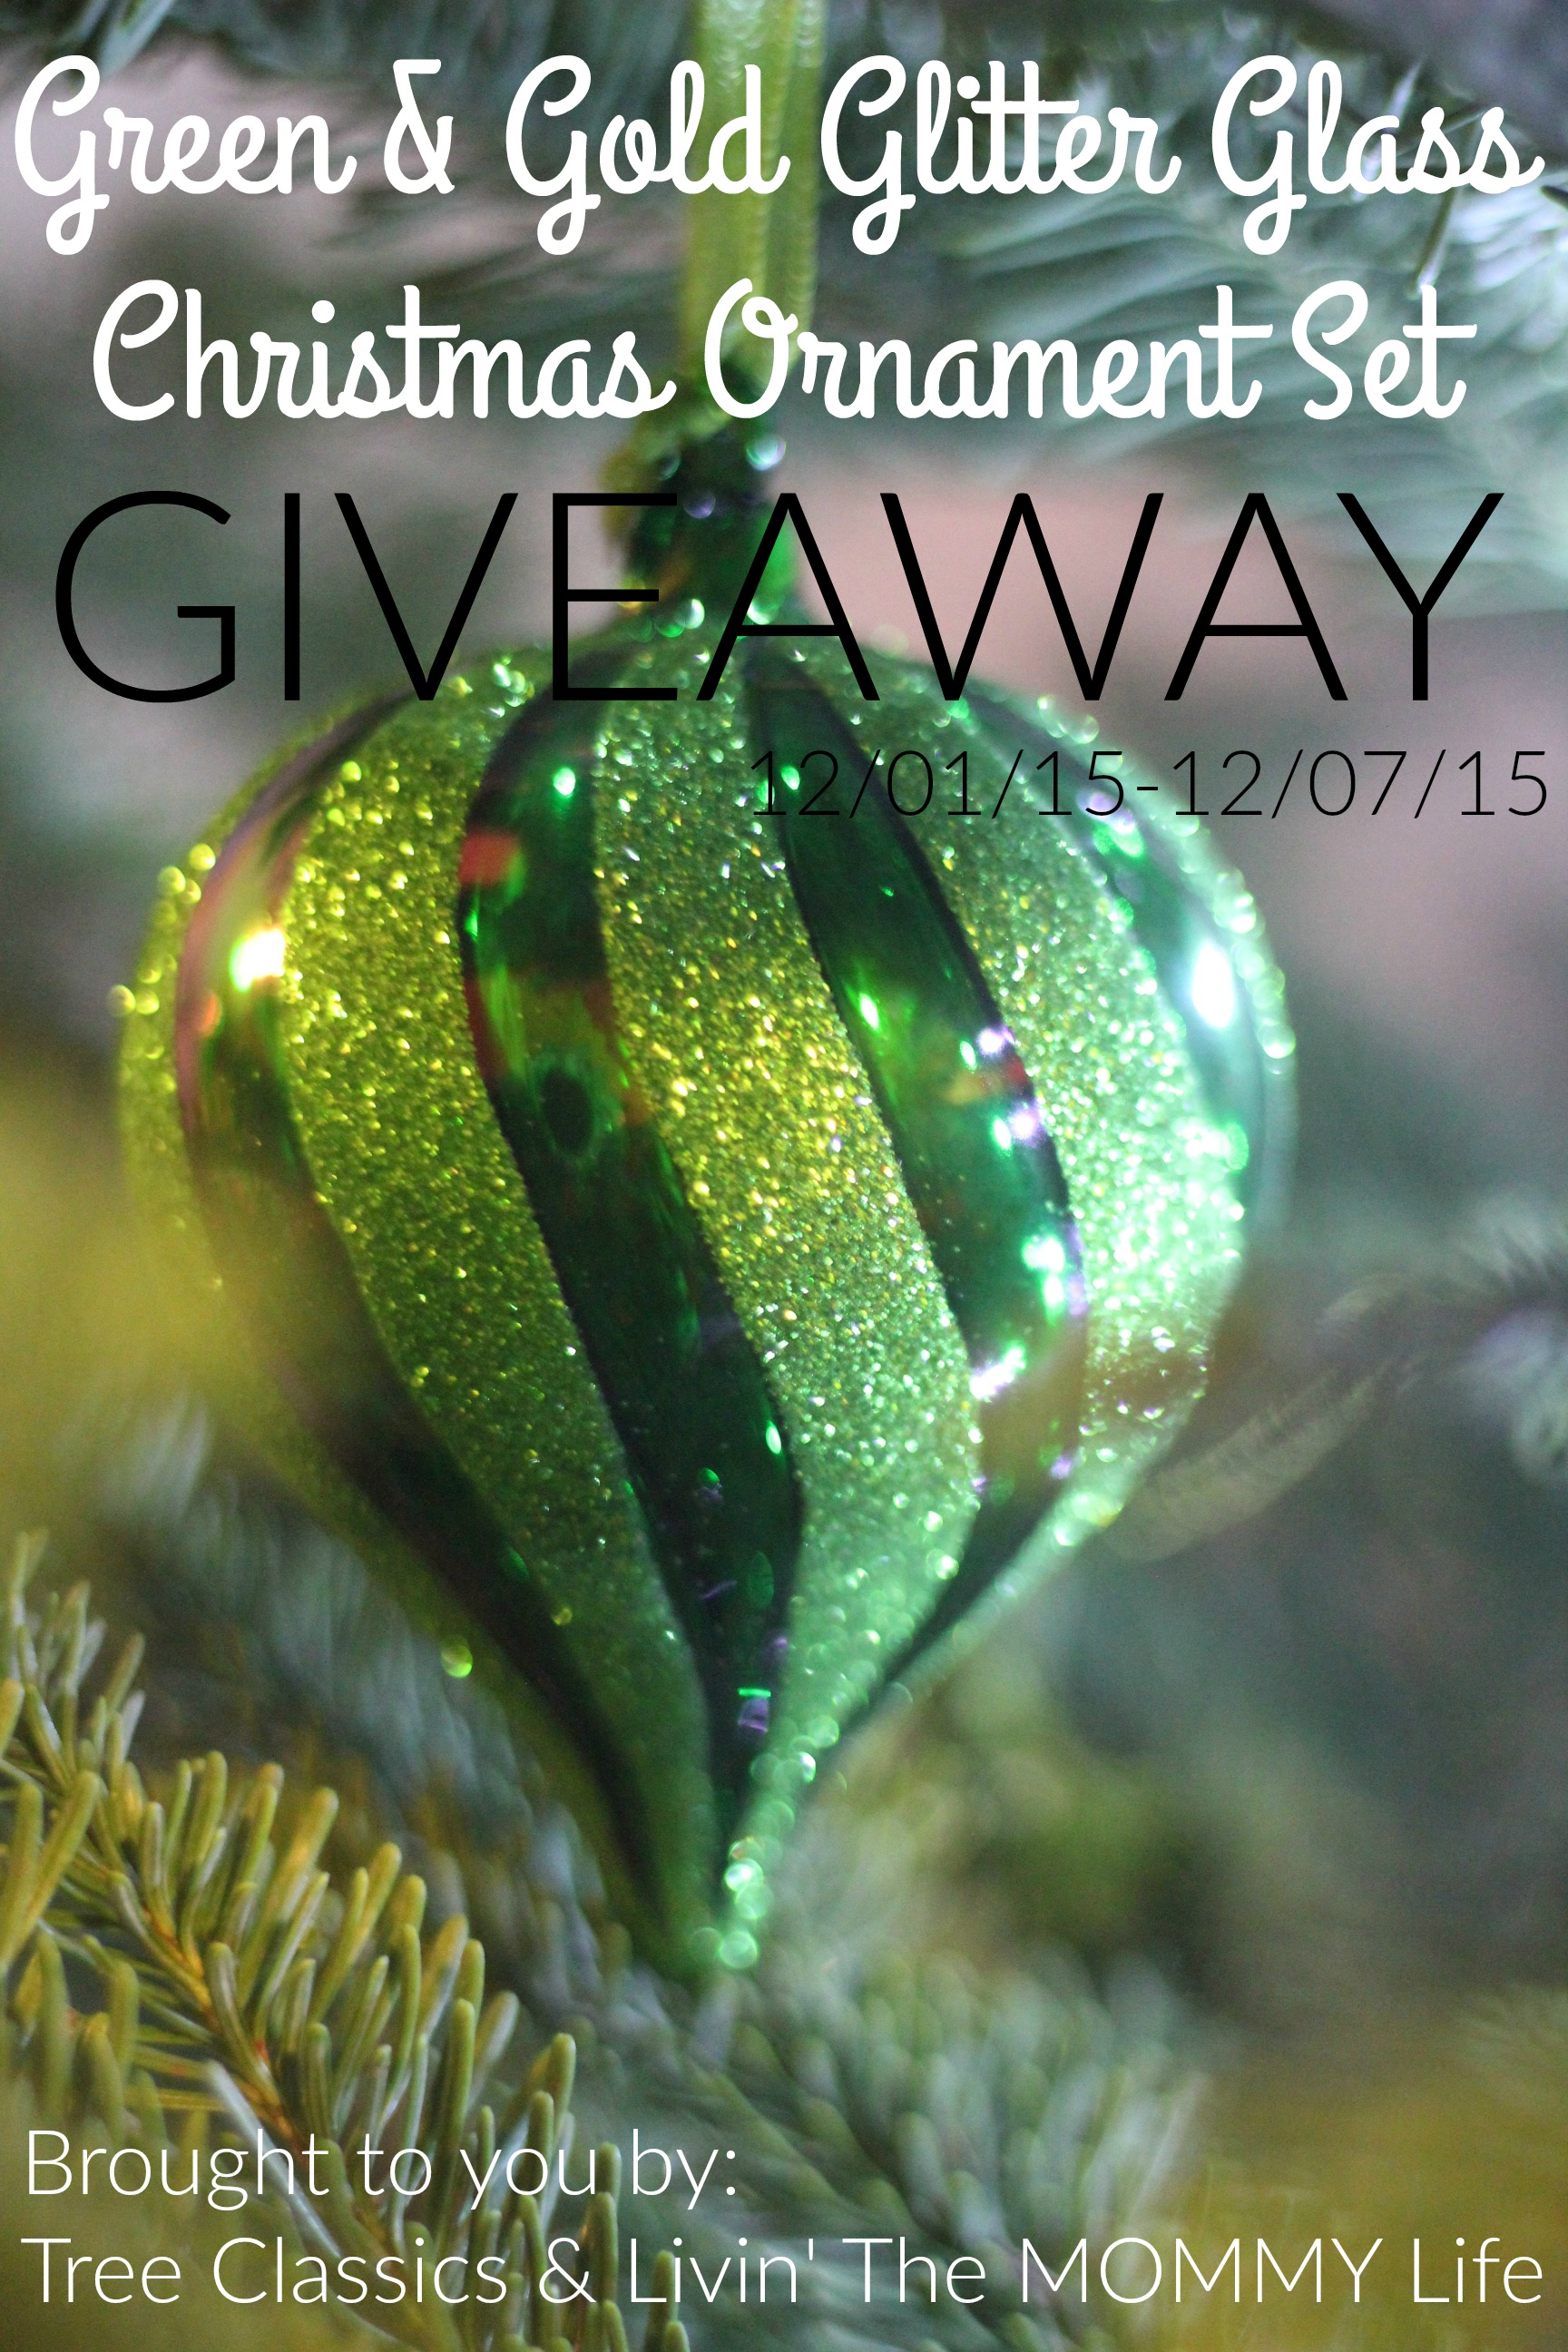 green & gold glitter glass christmas ornament set giveaway